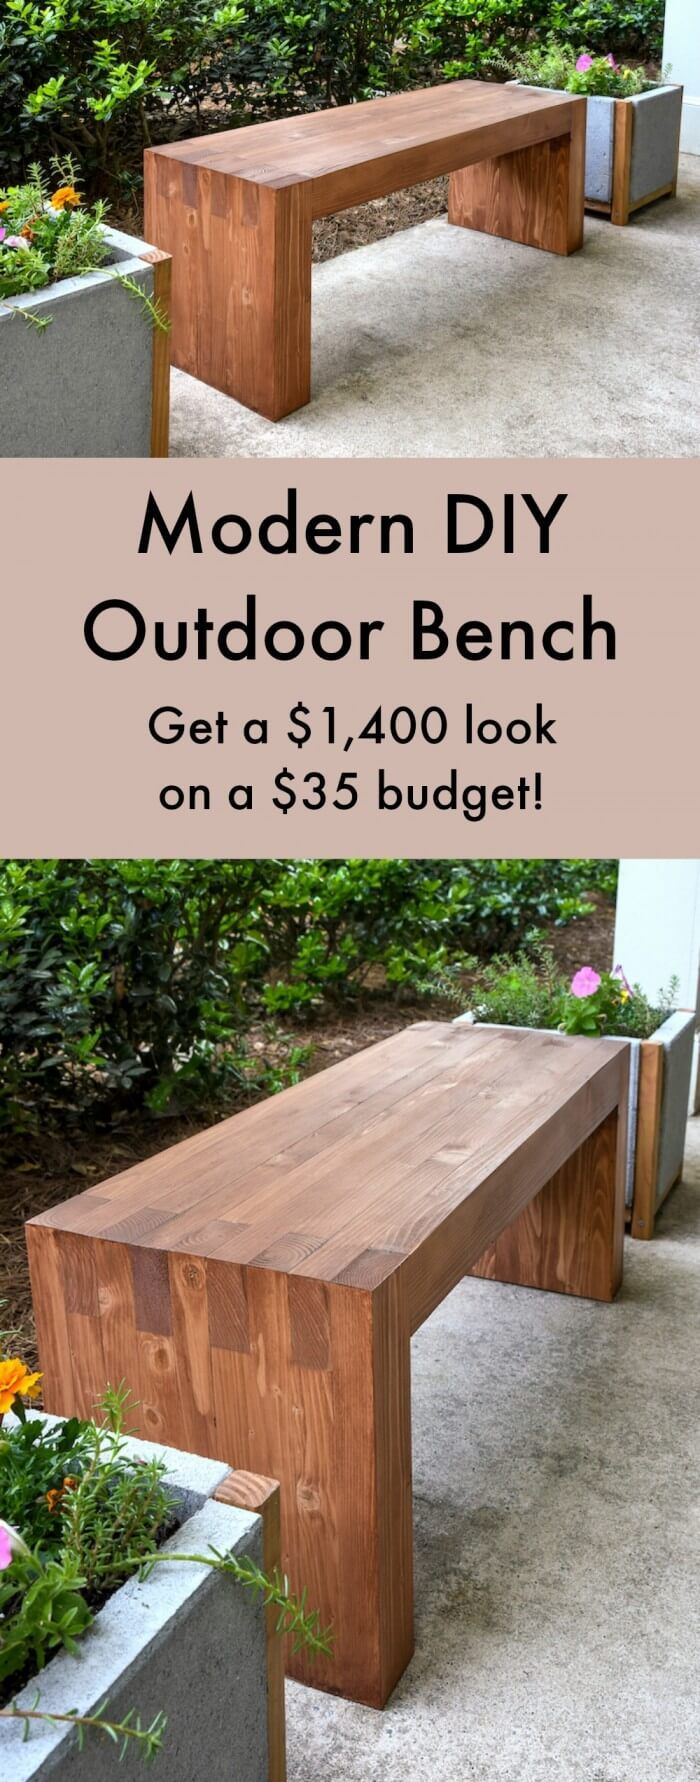 25 best ideas about modern outdoor benches on pinterest. Black Bedroom Furniture Sets. Home Design Ideas